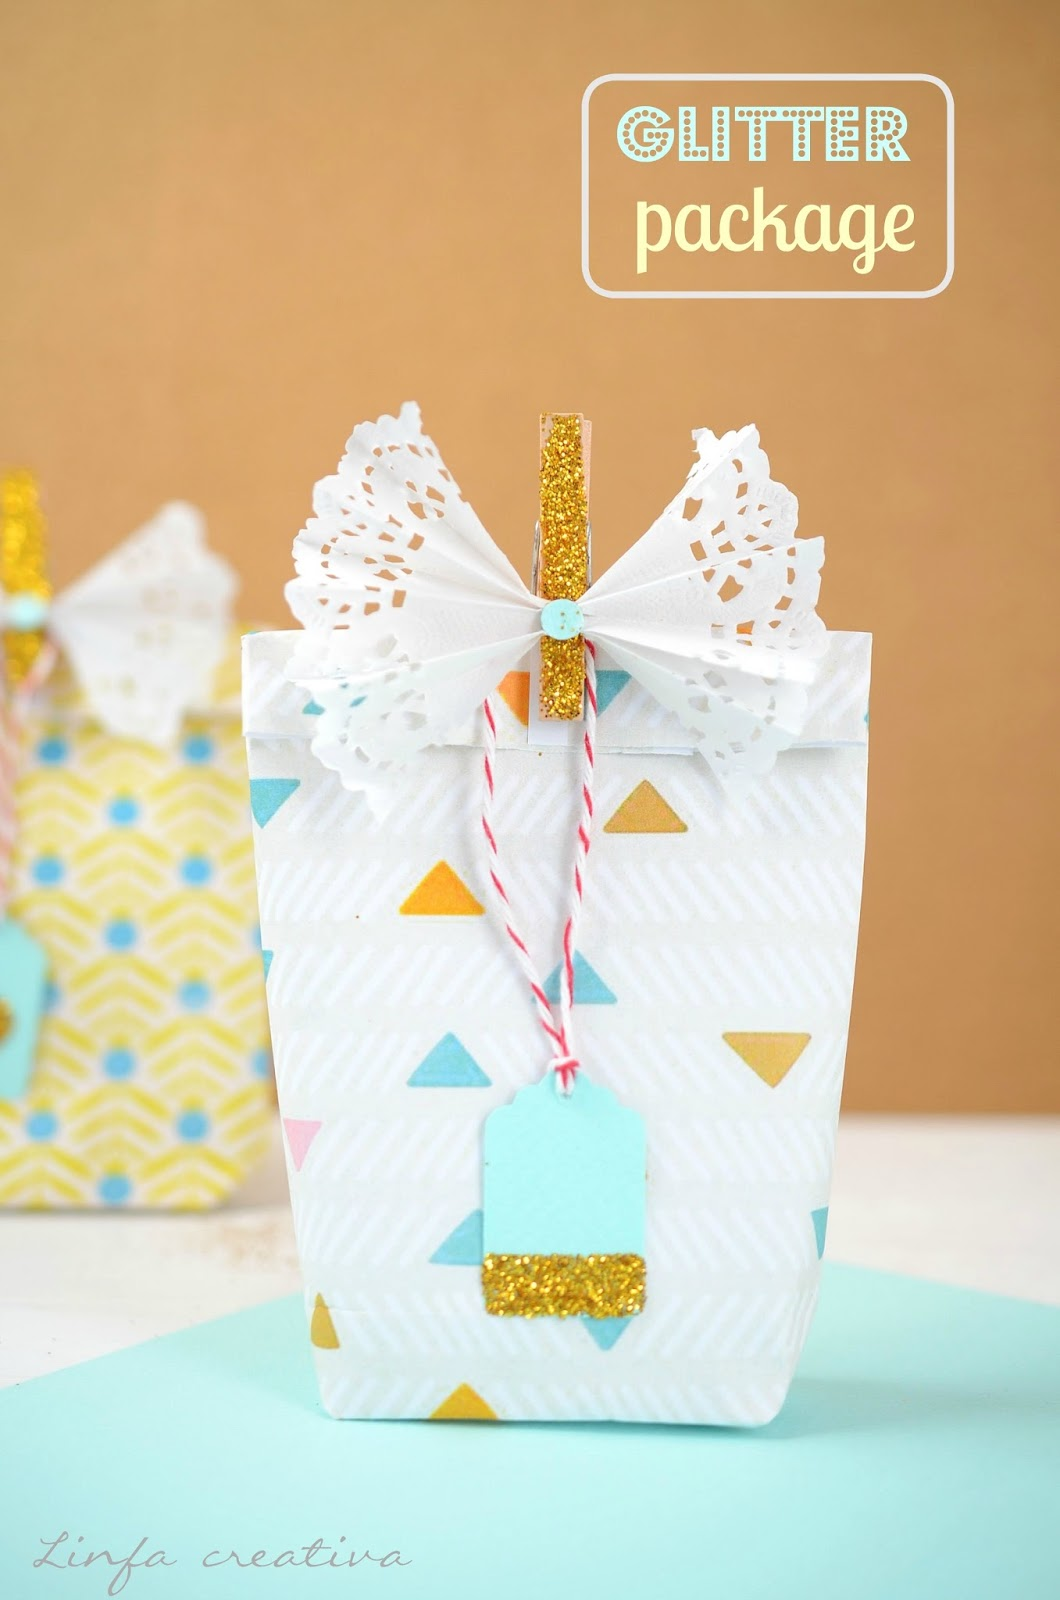 http://www.linfacreativa.net/2014/12/diy-gift-wrapping-idea-with-glitter.html